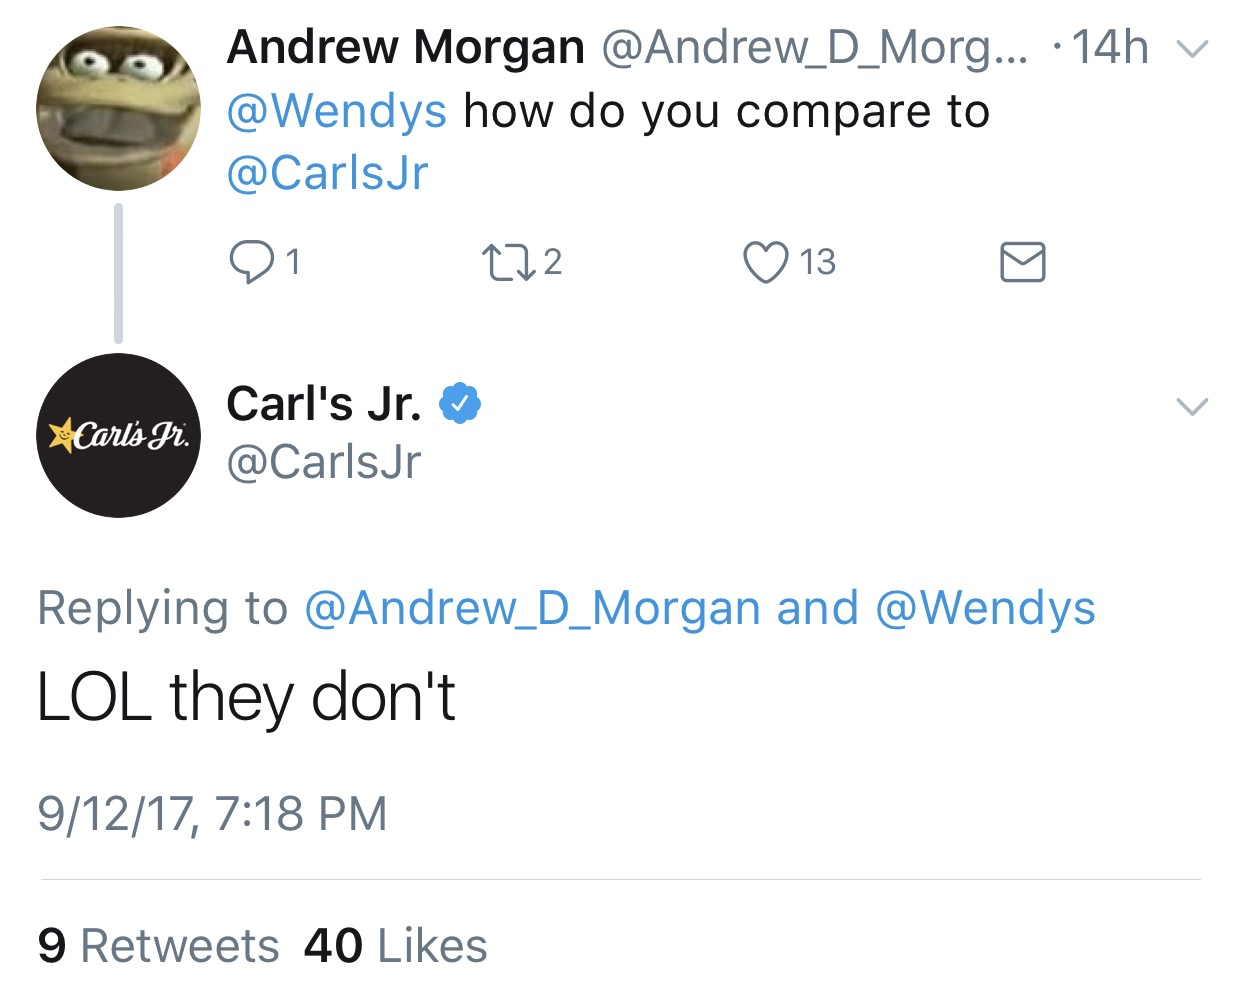 carls jr replies to wendys challenge